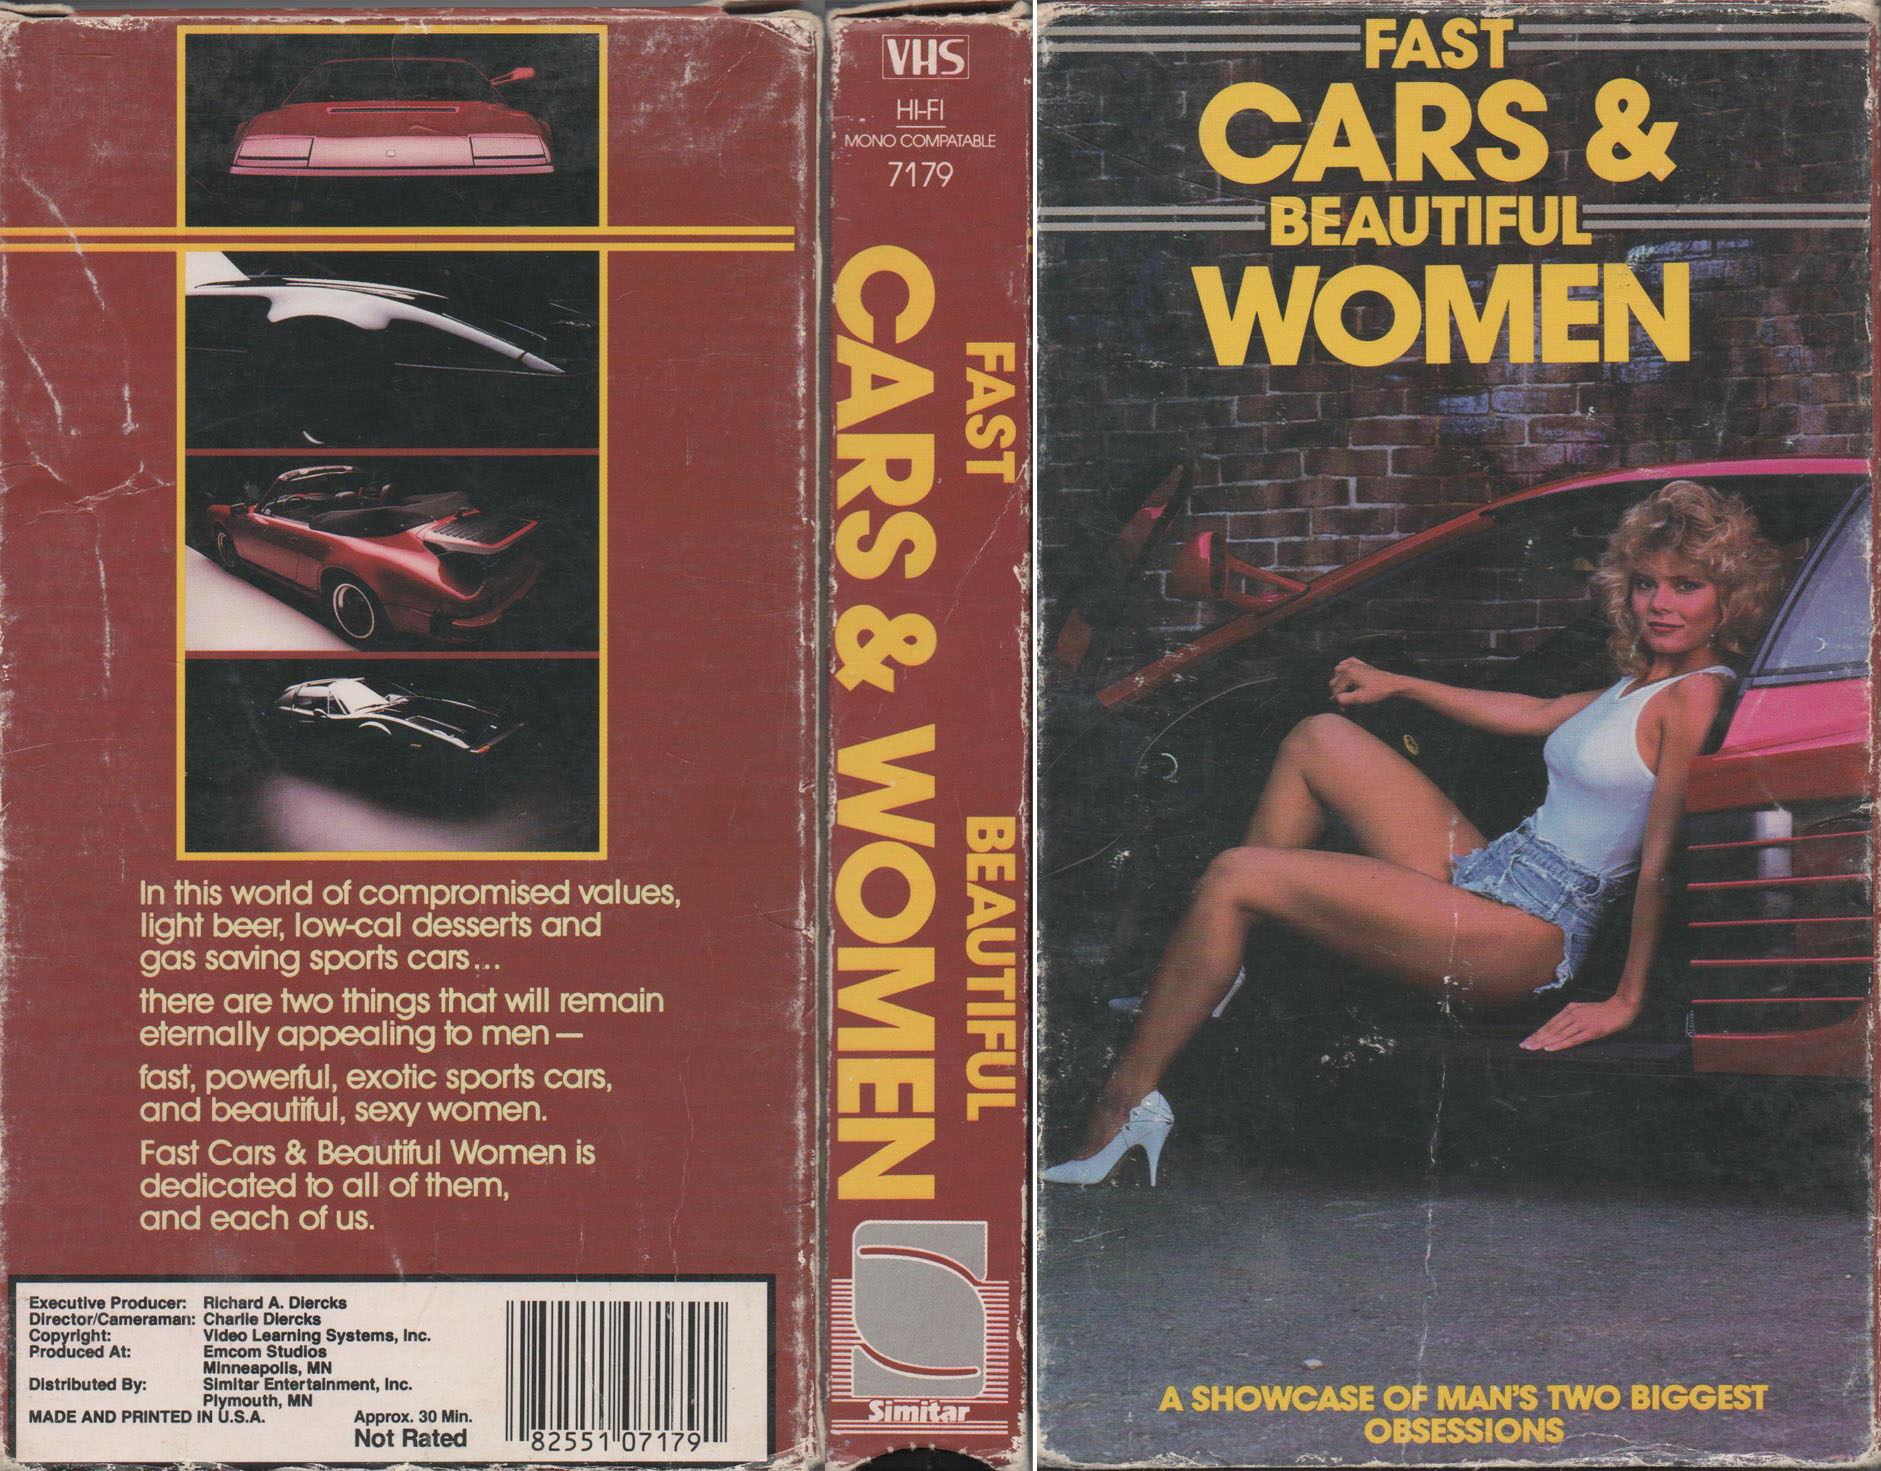 VHS WASTELAND YOUR HOME FOR HIGH RESOLUTION SCANS OF RARE - Beautiful fast cars